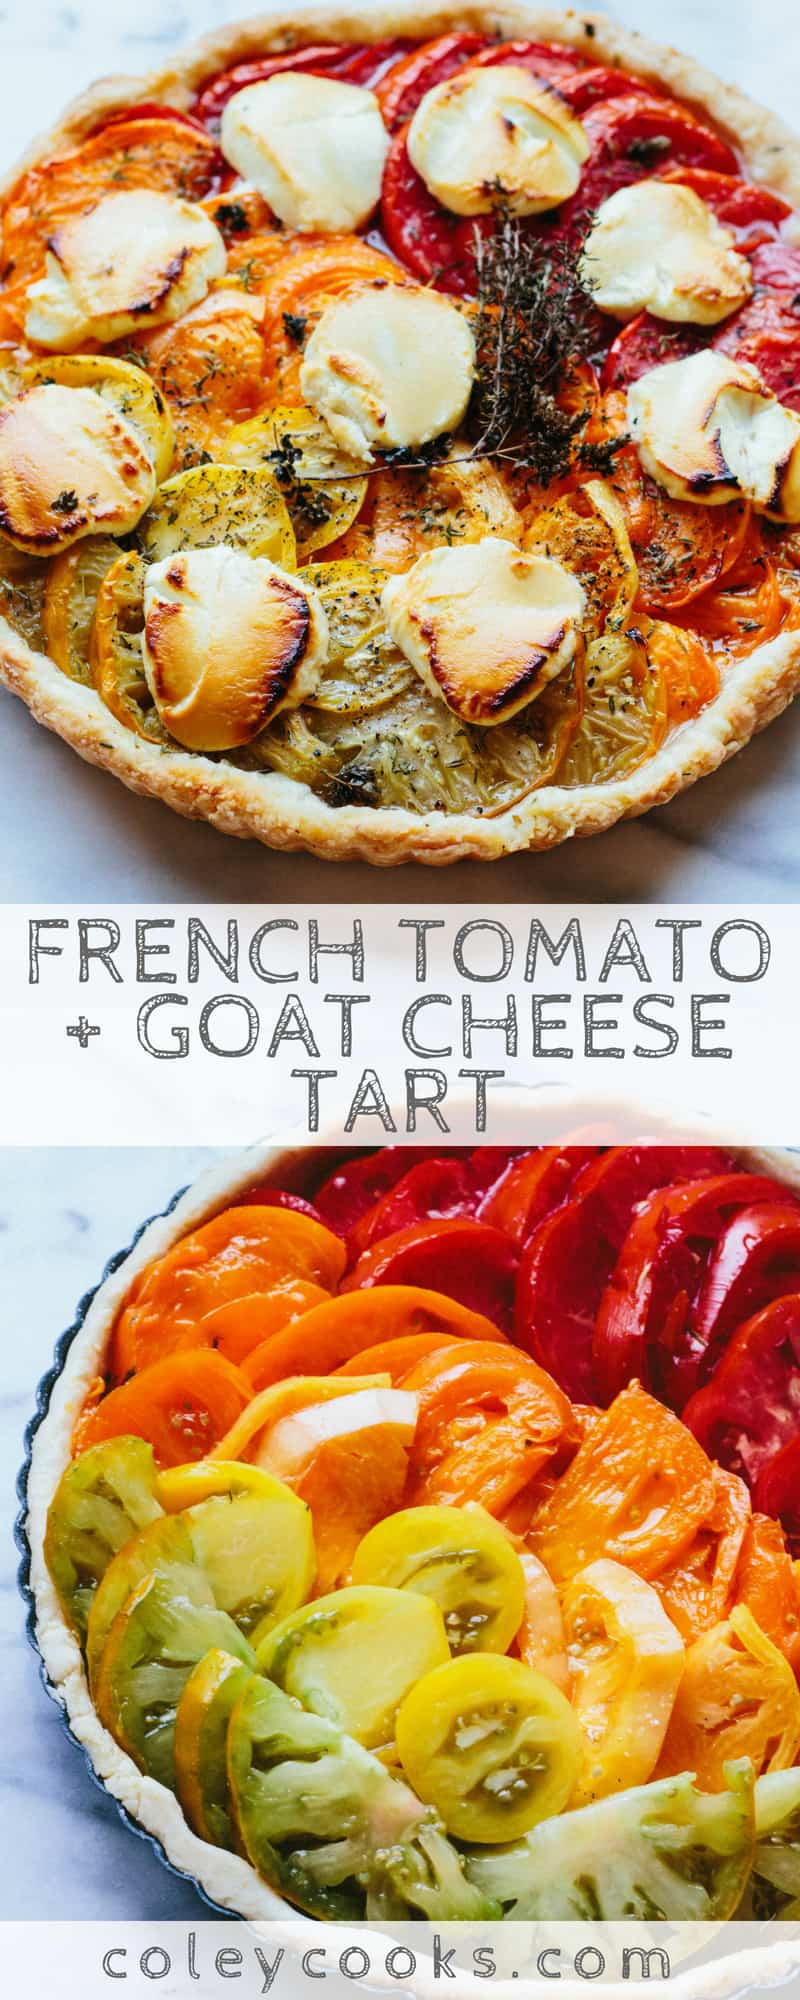 FRENCH TOMATO + GOAT CHEESE TART | The best recipe for French tomato + goat cheese tart. Easy and insanely delicious! #easy #heirloom #tomato #recipe #summer #French | ColeyCooks.com